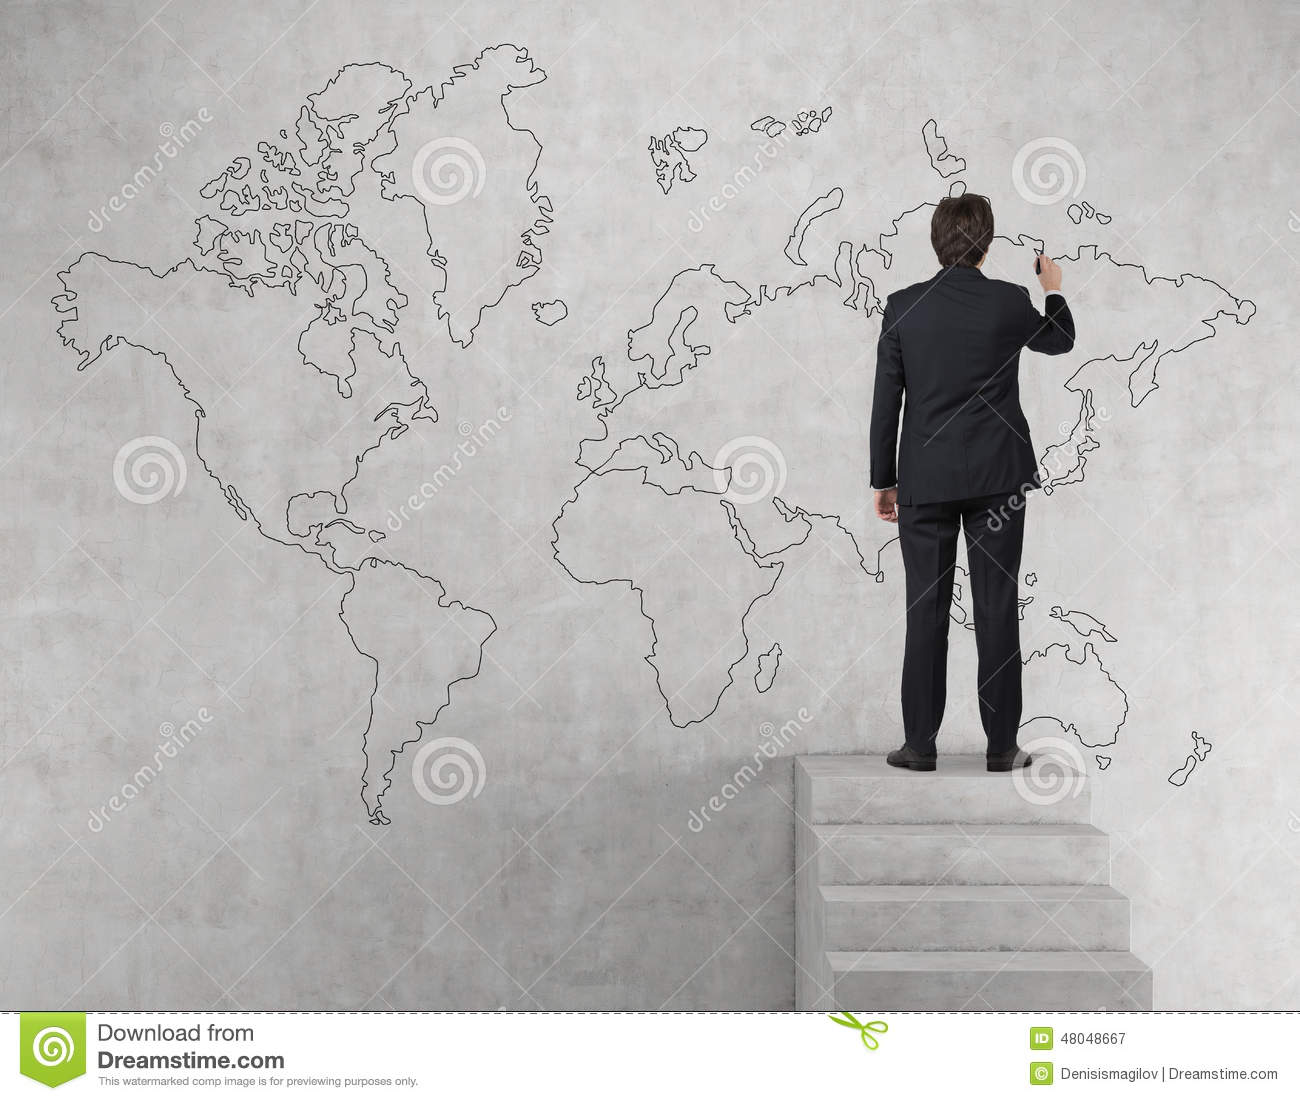 Businessman drawing world map stock image image of creativity download businessman drawing world map stock image image of creativity research 48048667 gumiabroncs Images